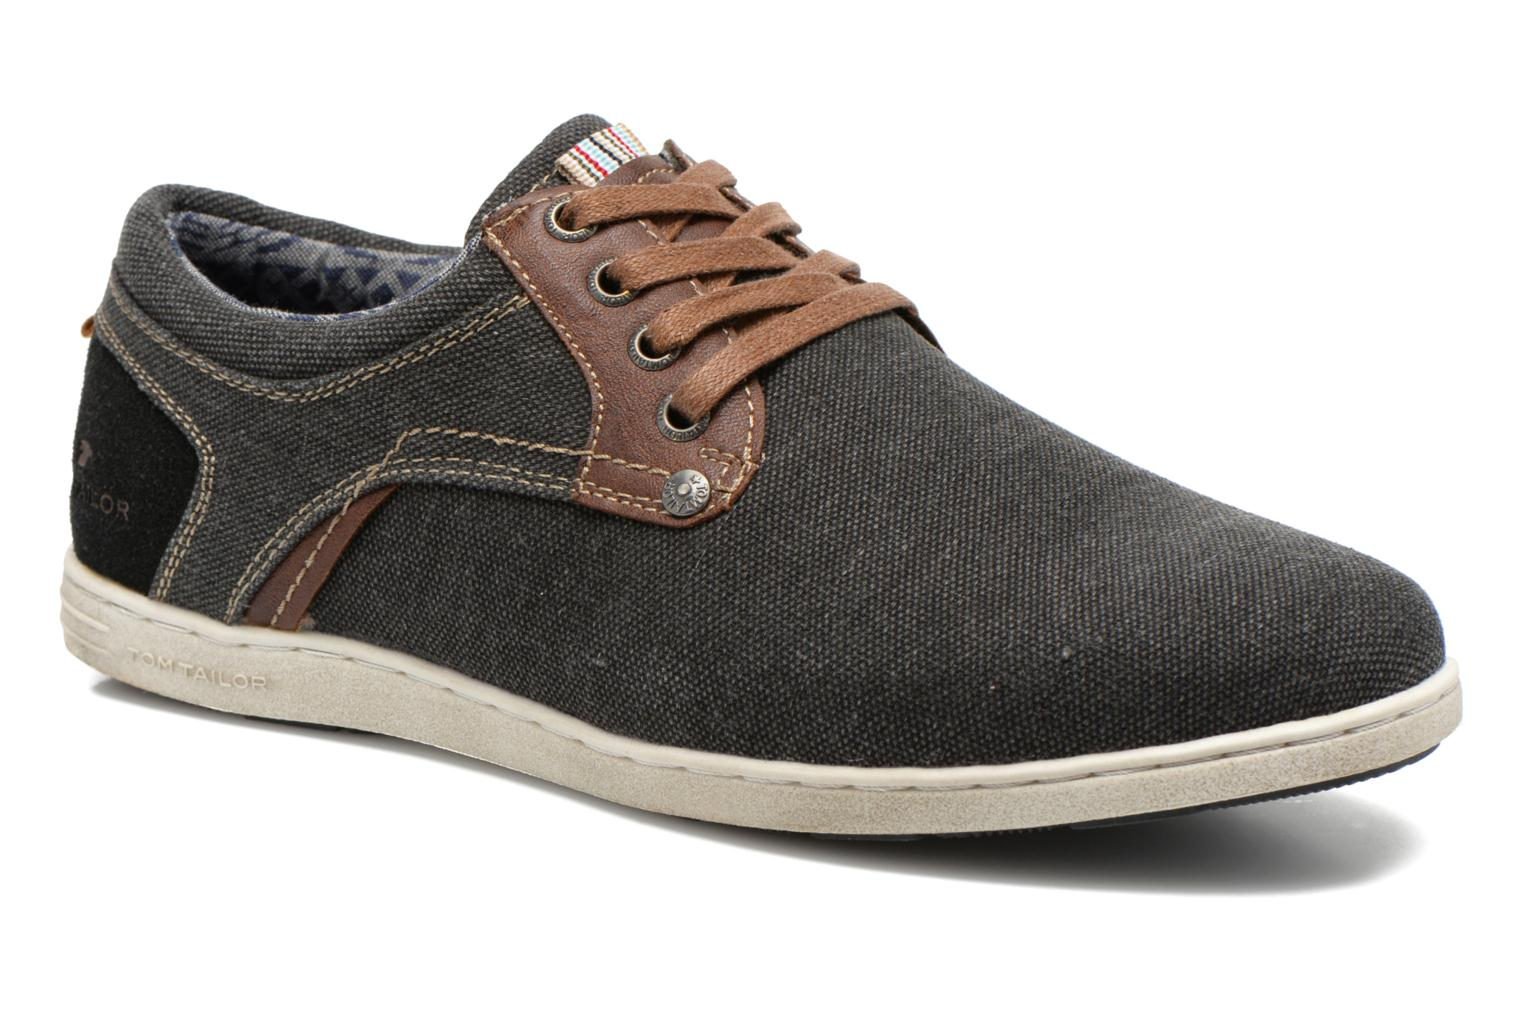 Sneakers Wyatt by Tom Tailor